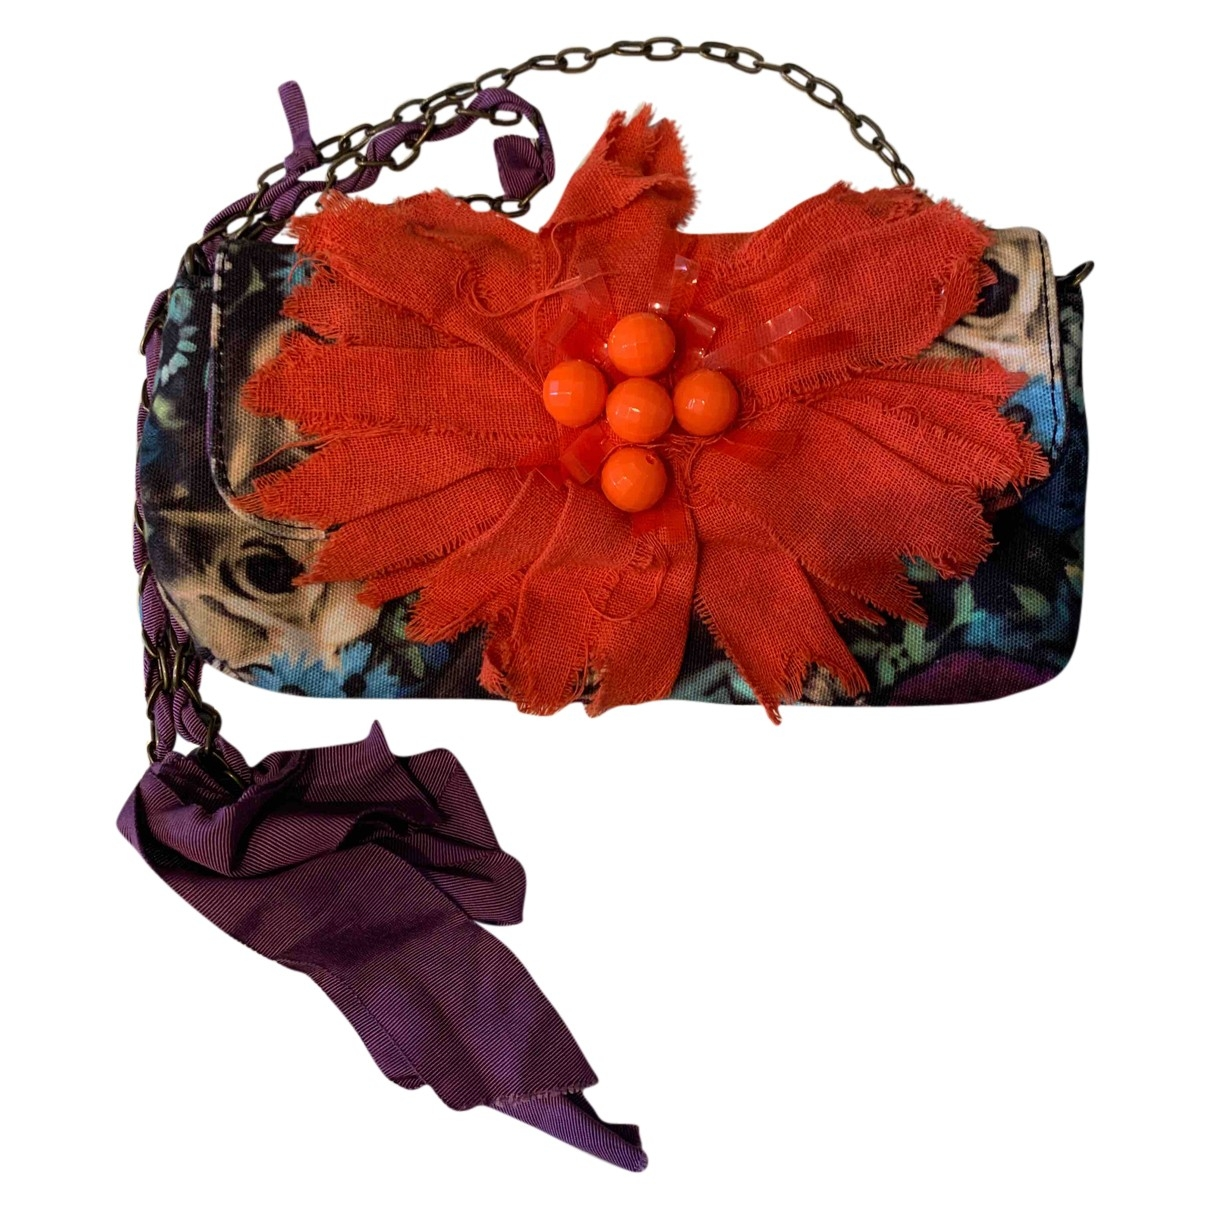 Lanvin For H&m \N Clutch in  Bunt Leinen